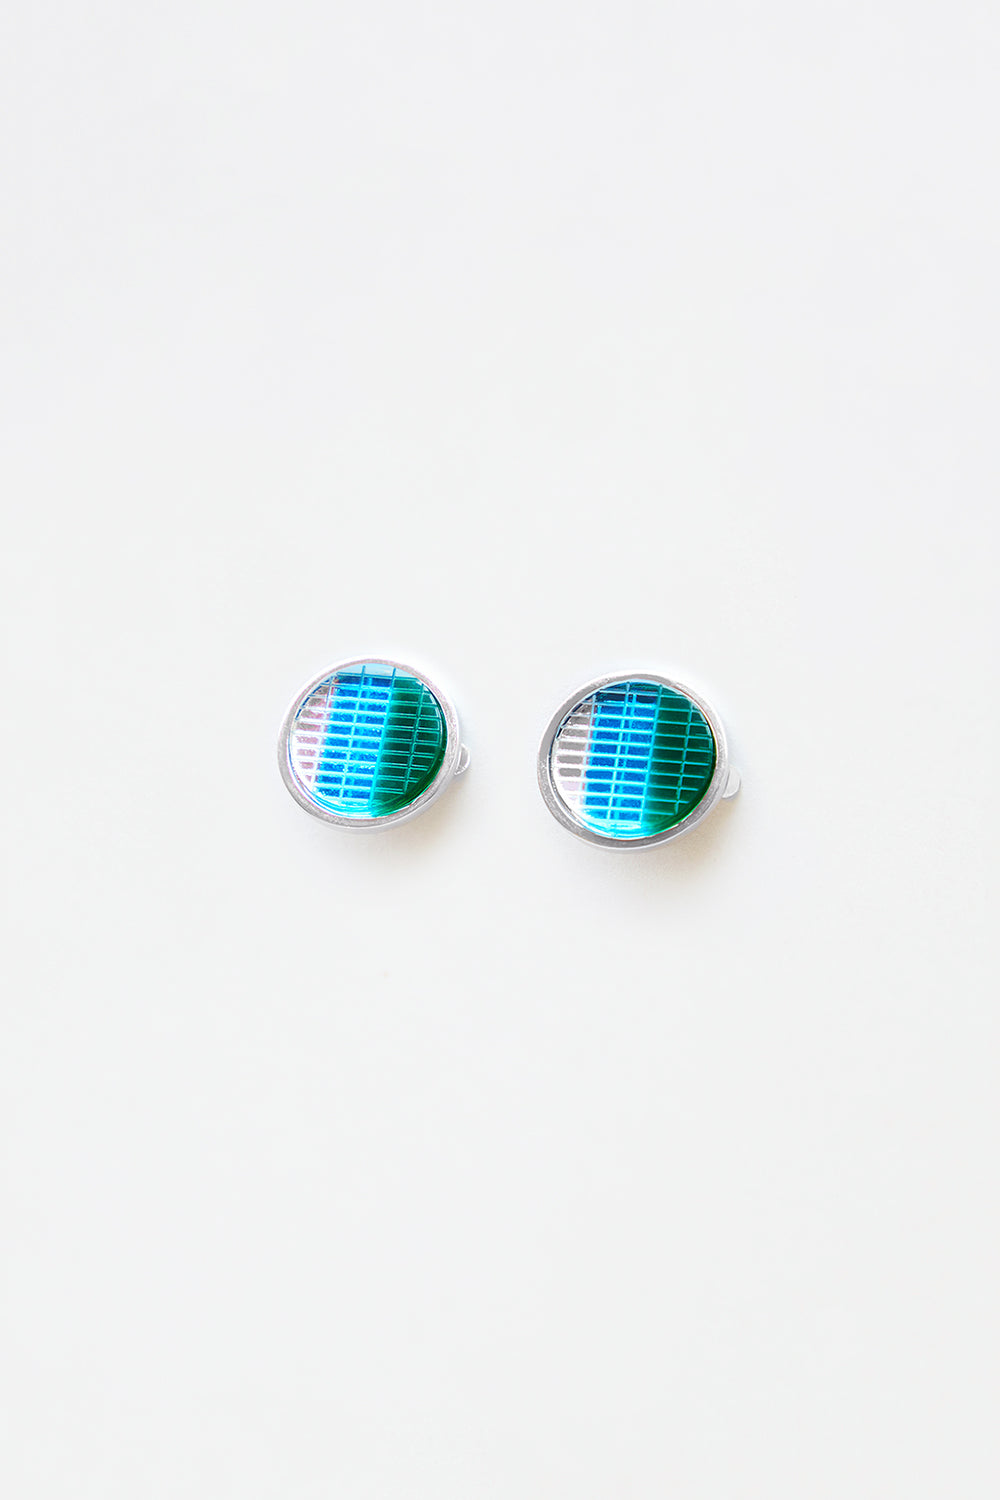 Blue Blinker Earrings